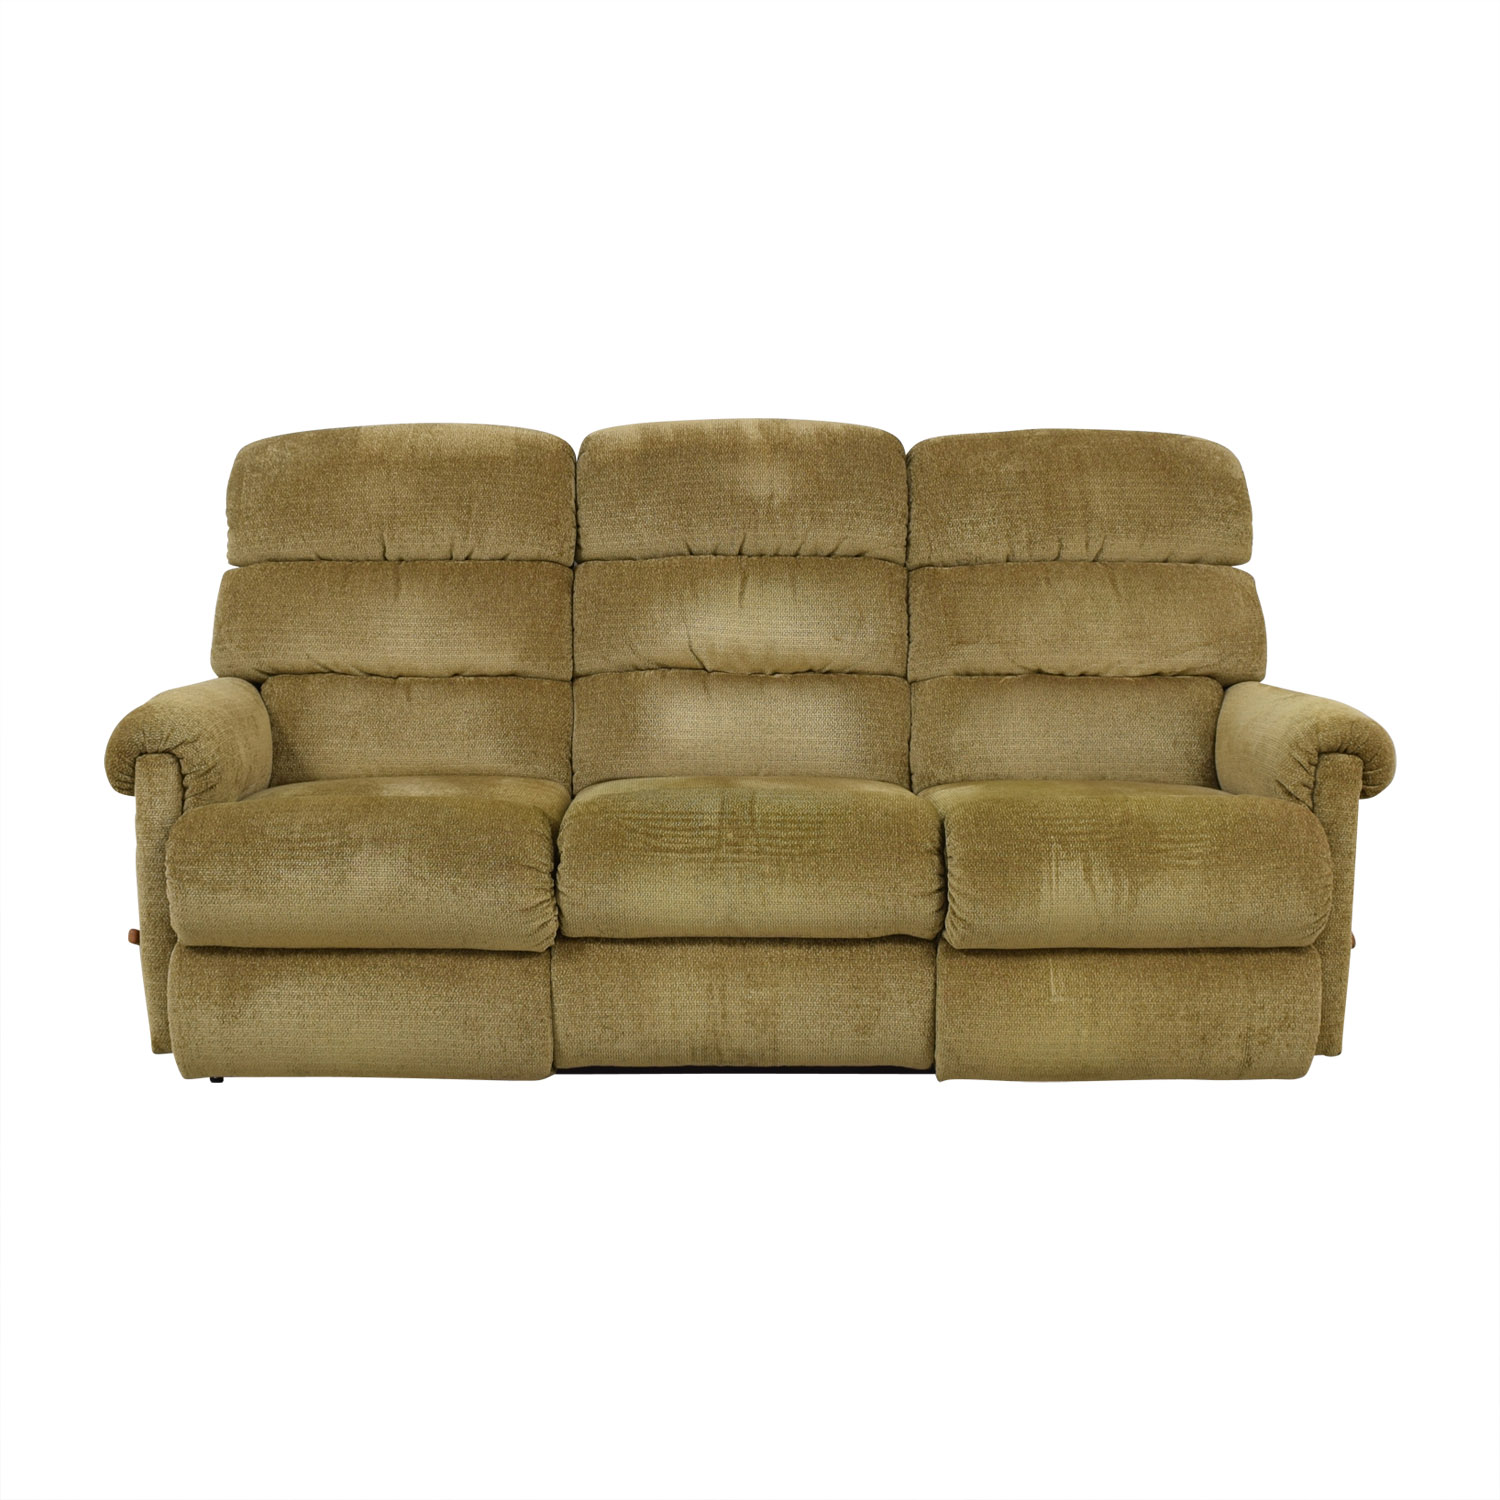 La-Z-Boy La-Z-Boy Tan Reclining Three-Cushion Sofa for sale